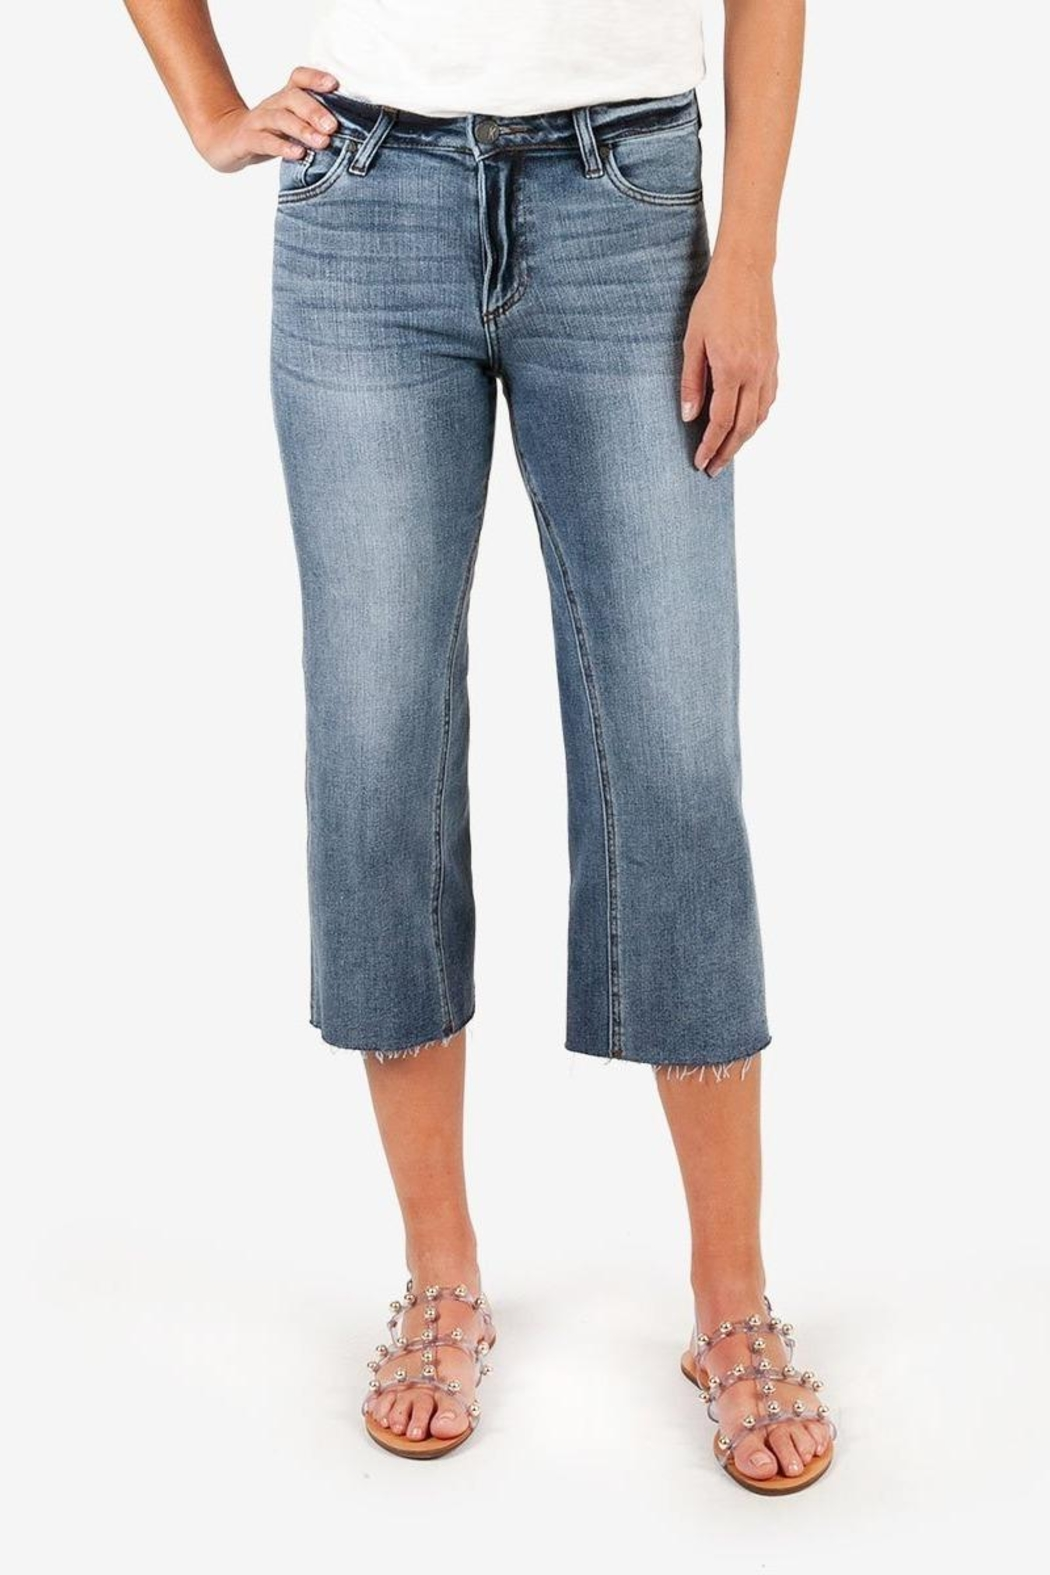 Kut from the Kloth Charlotte Crop Culotte - Main Image